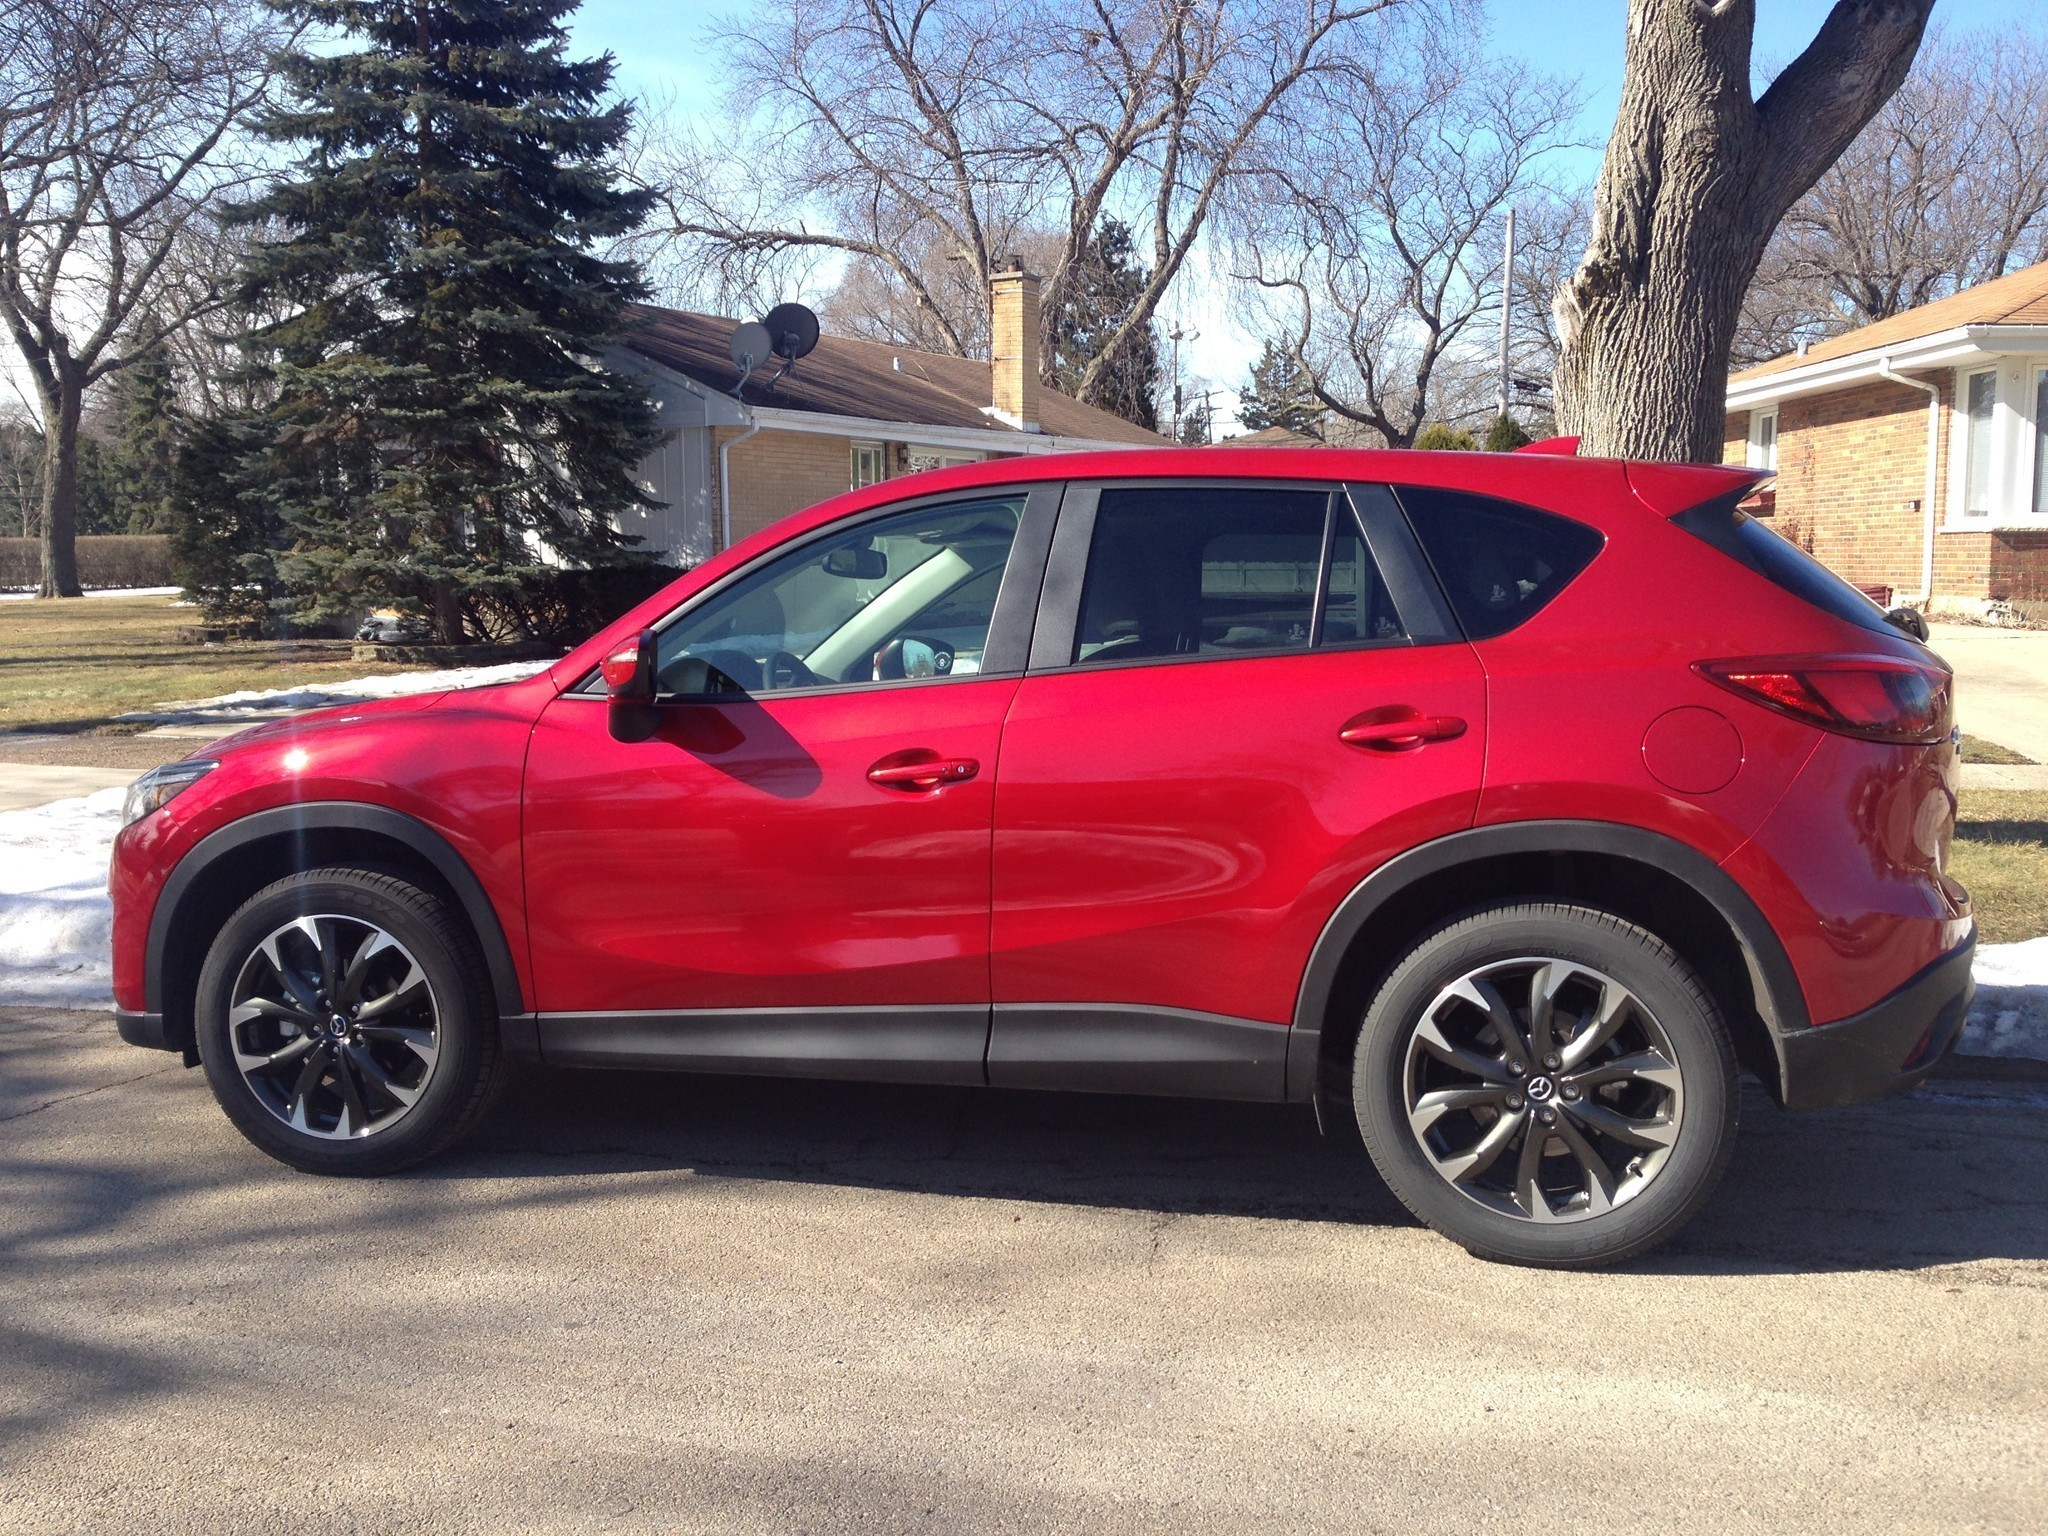 2016 mazda cx 5 refresh upgrades infotainment to luxury level chicago tribune. Black Bedroom Furniture Sets. Home Design Ideas